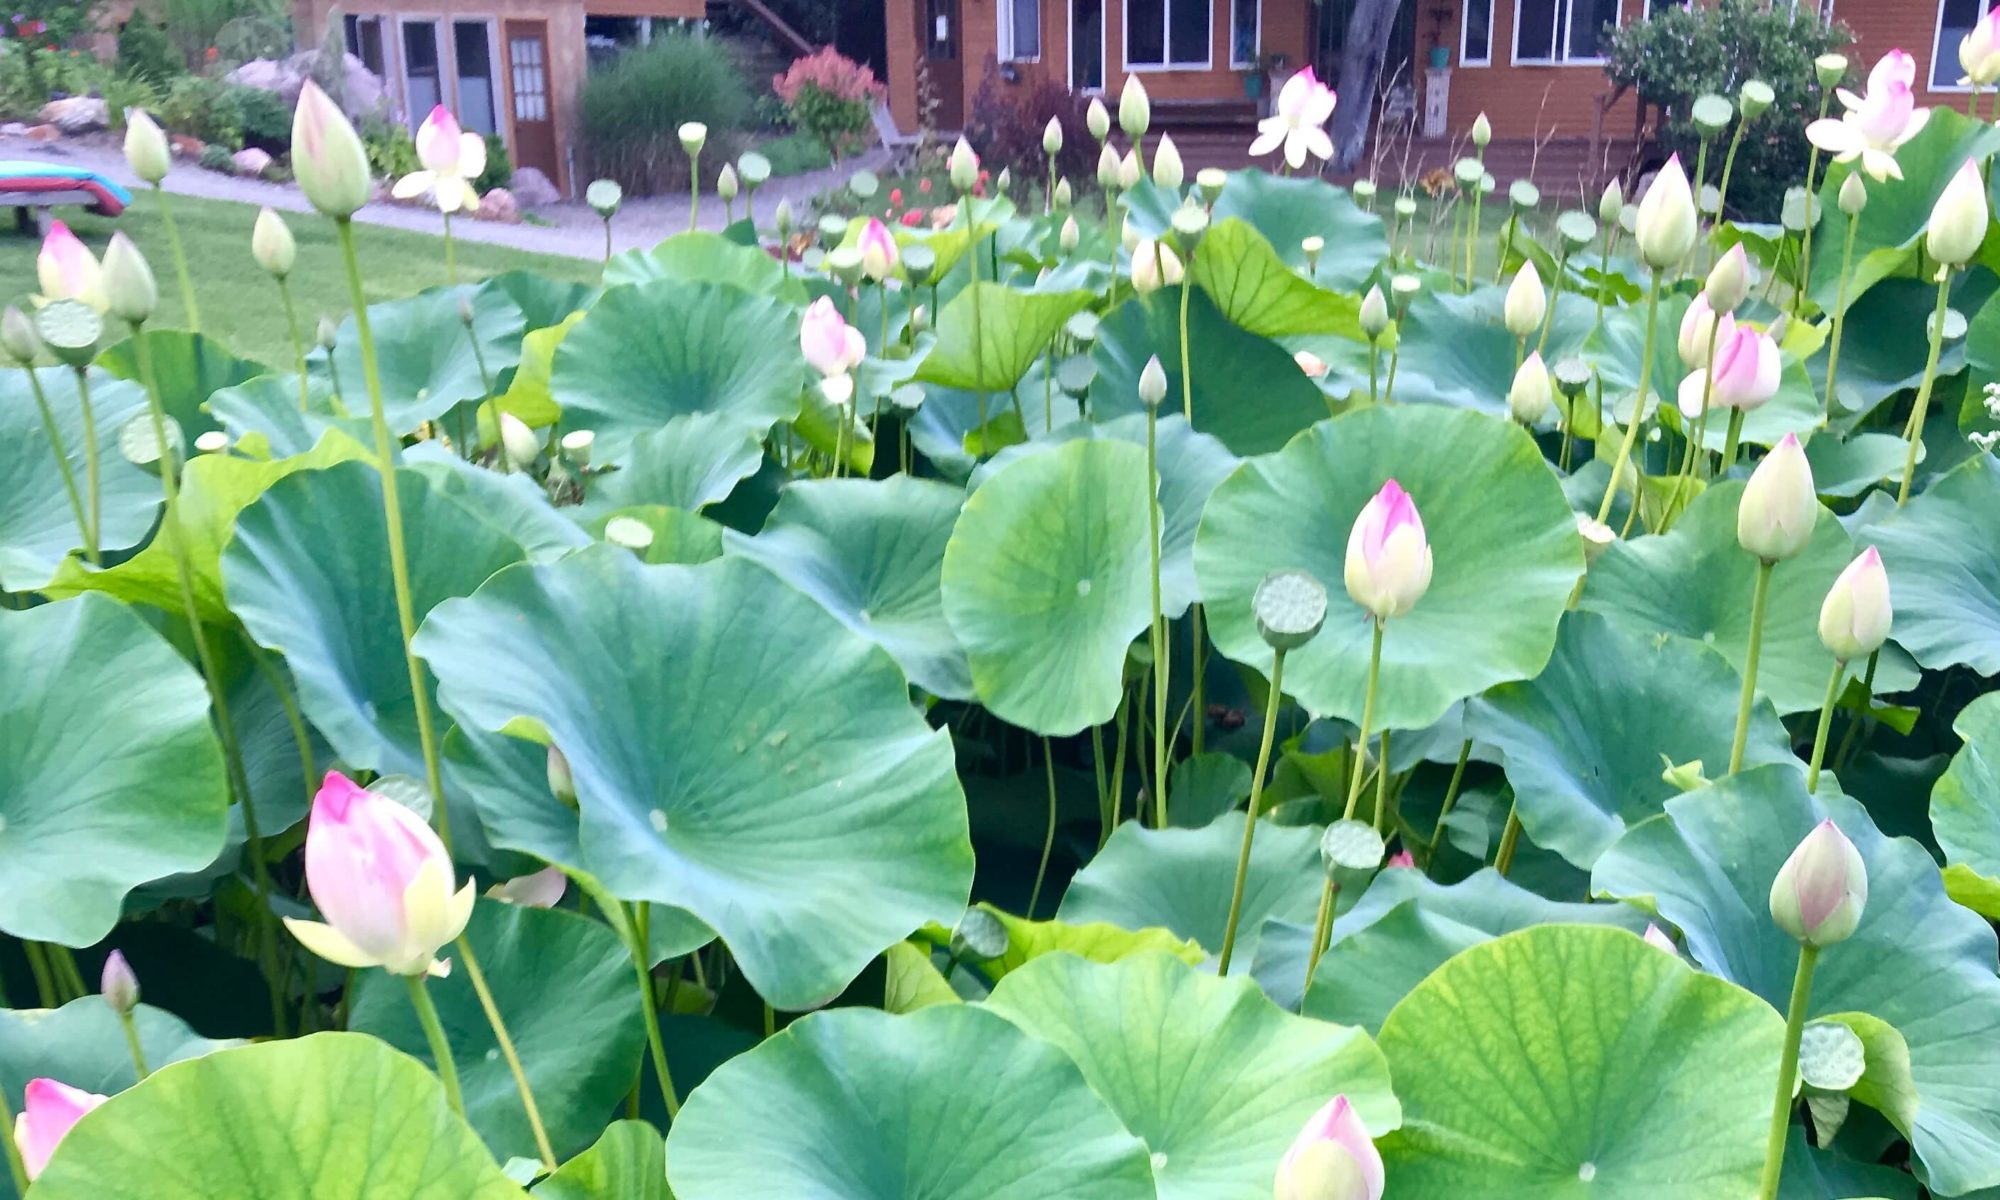 Ithaca Zen Center lotus blooming looking toward house